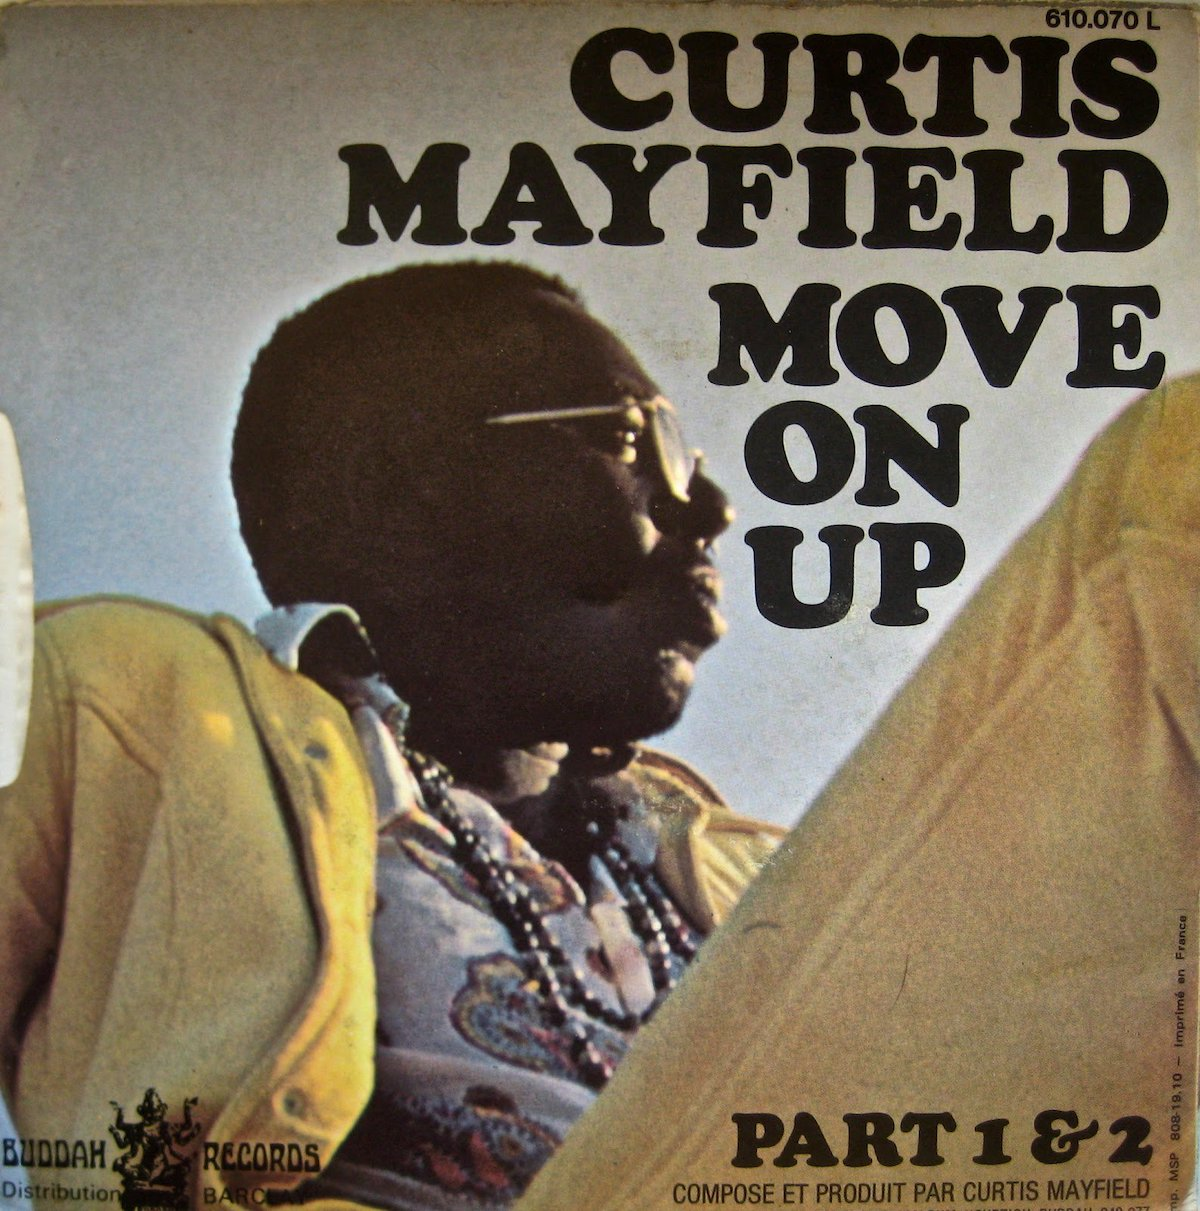 """curtis mayfield album cover for """"move on up"""""""